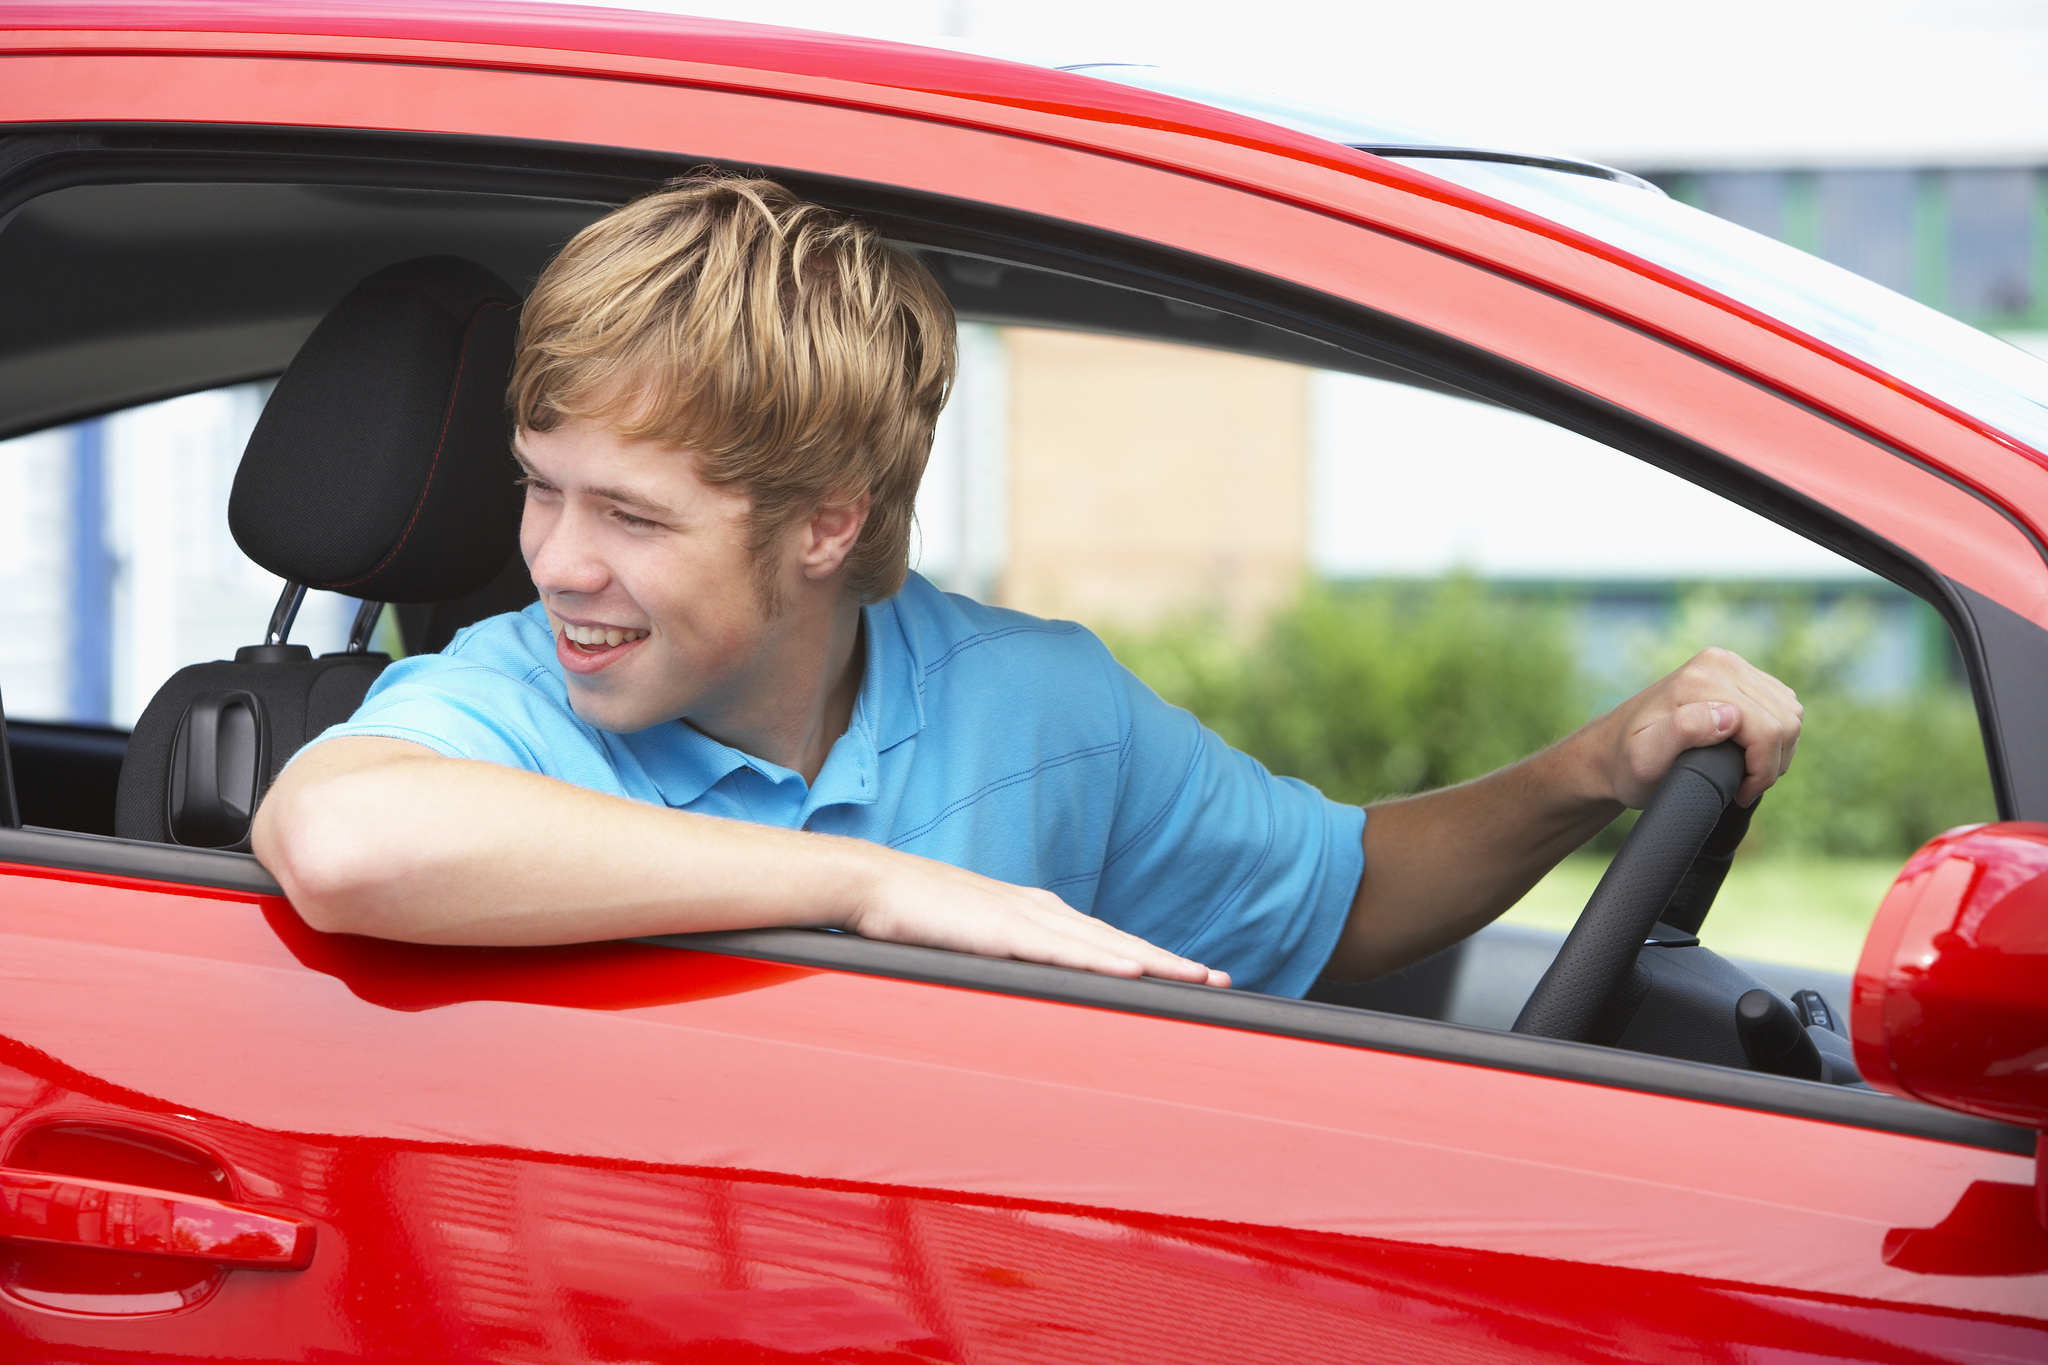 Ford Driving Skills for Life - Sun State Ford - Teen Driver